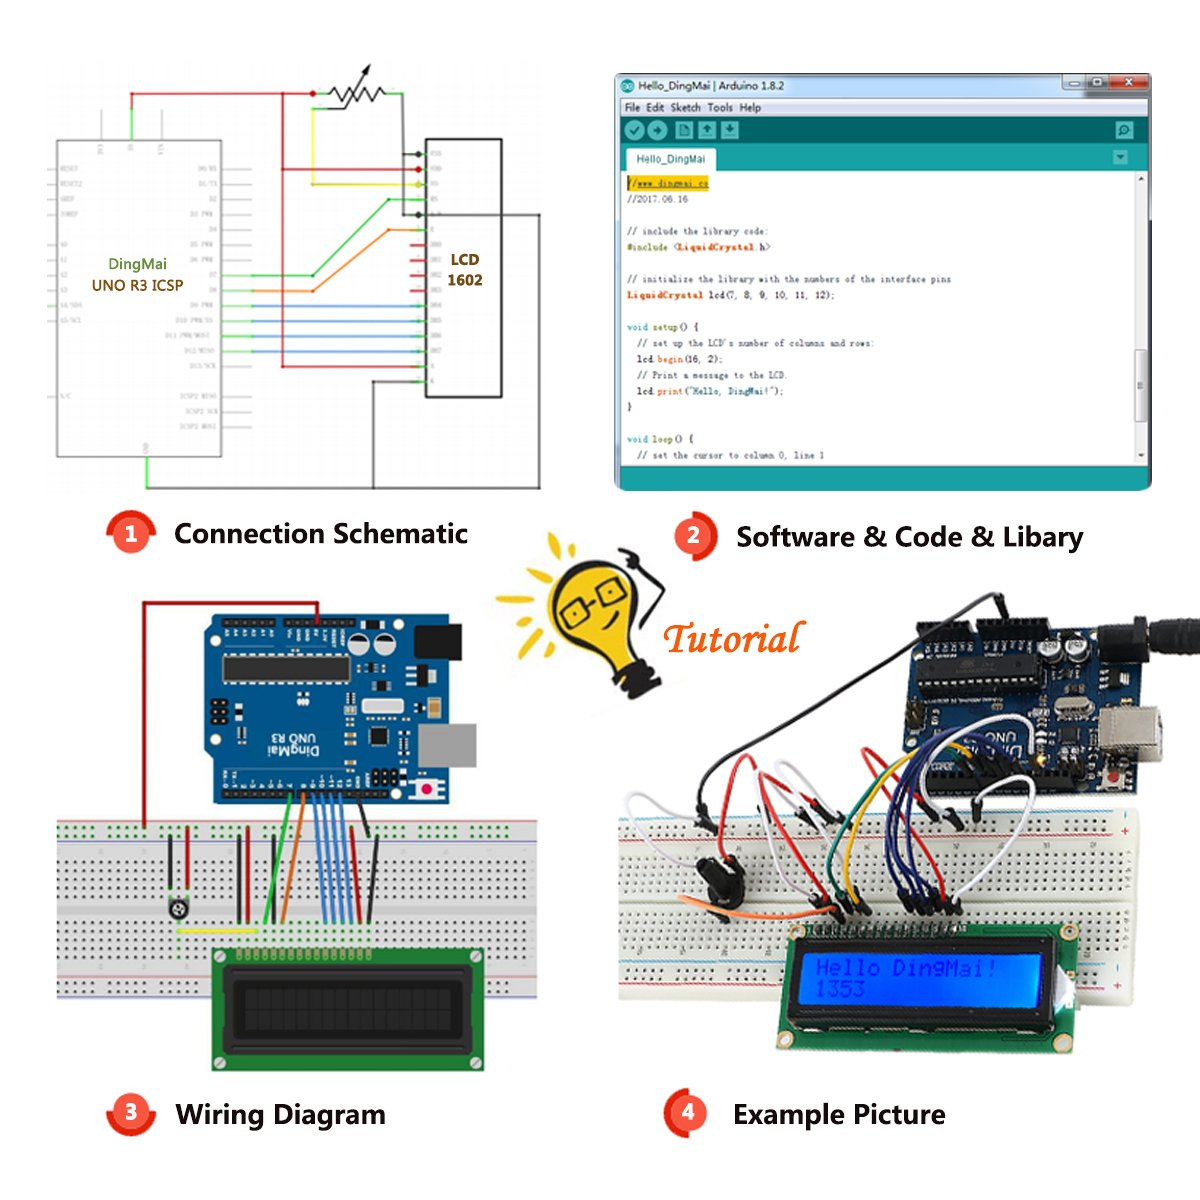 Dingmai Uno R3 Super Starter Kit With Multilingual Ci 65 Central Locking Interface Wiring Diagram Comprehensive Tutorials And Professional Support For Arduino Project 49 Items